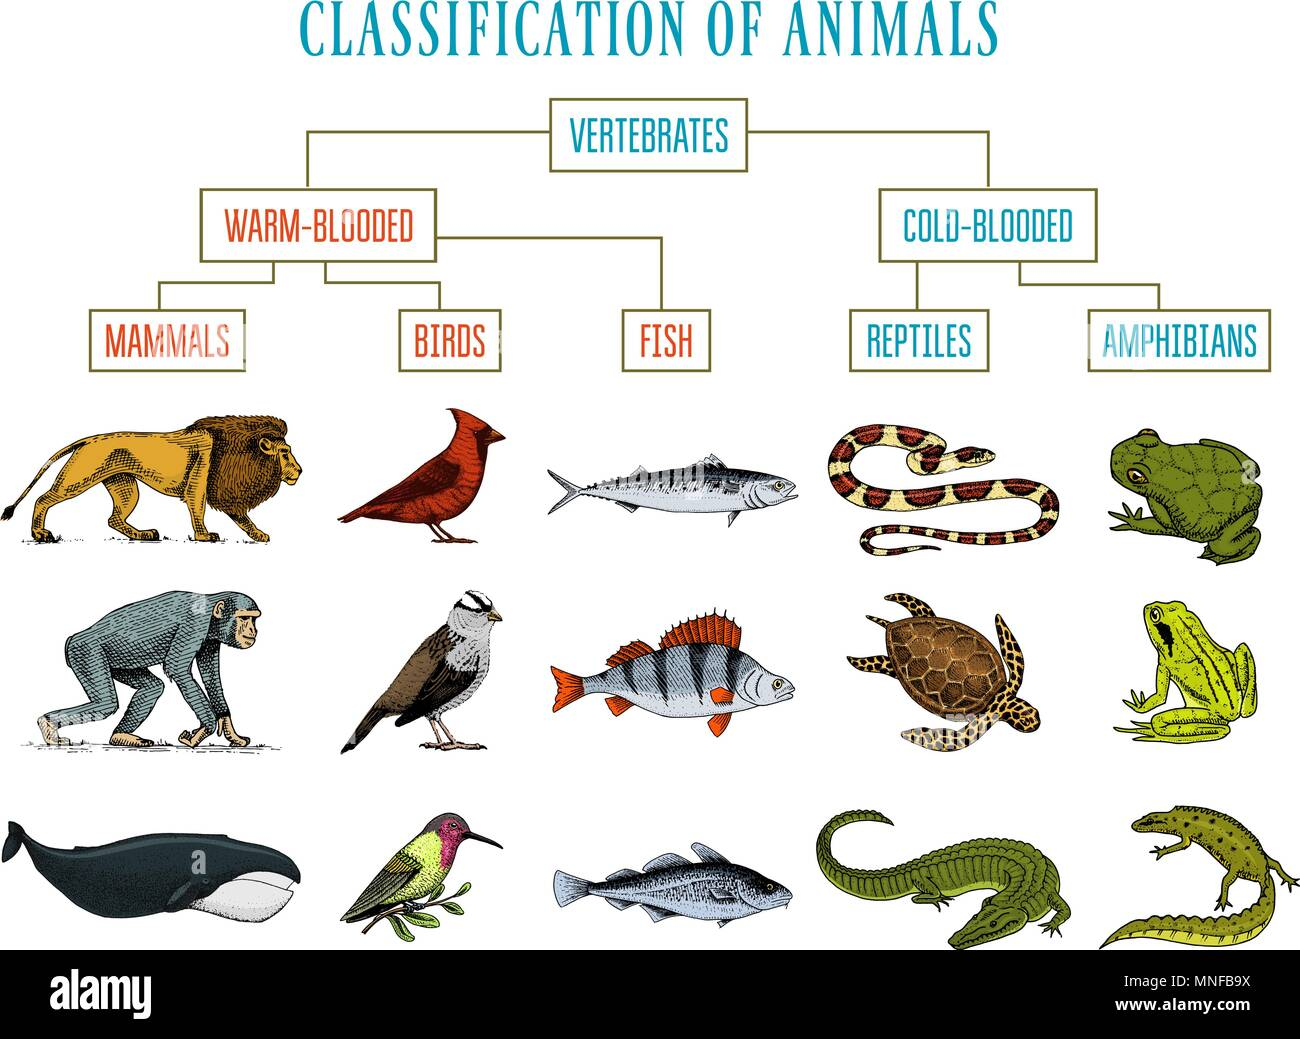 Classification Animals Stockfotos & Classification Animals Bilder ...